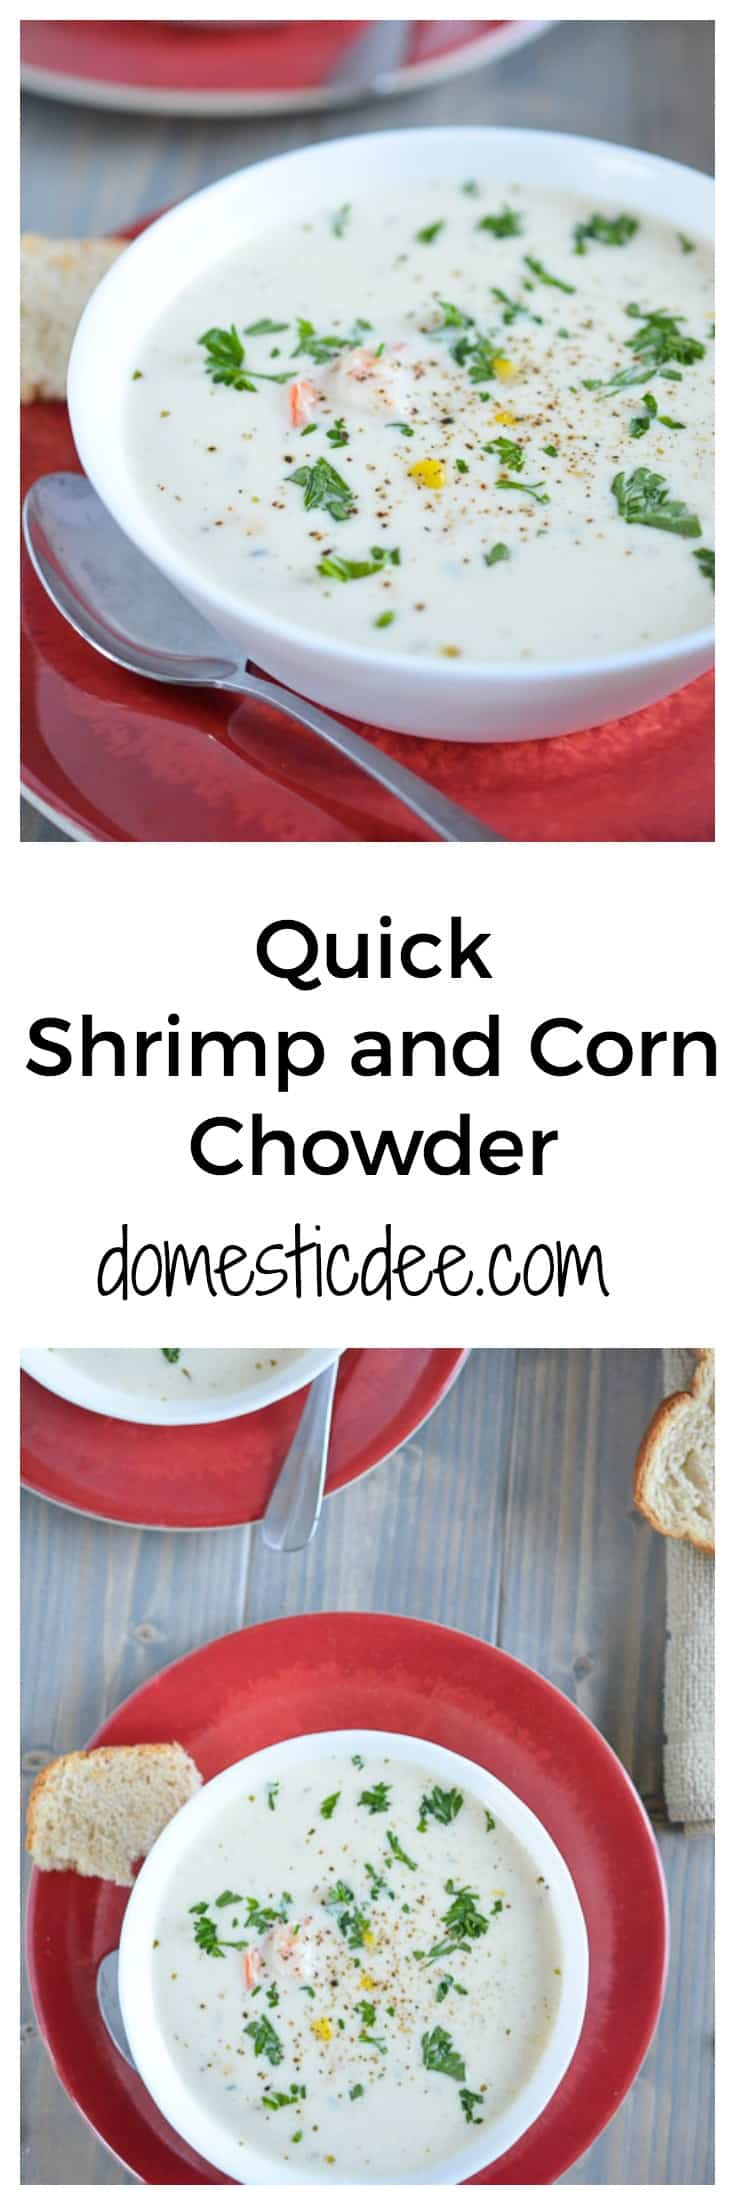 Quick Shrimp & Corn Chowder-This creamy shrimp and corn chowder dish will become your favorite meal of all time. It's so so easy to make and simply delicious. I guarantee this will be added to your family's weekly meal plan.